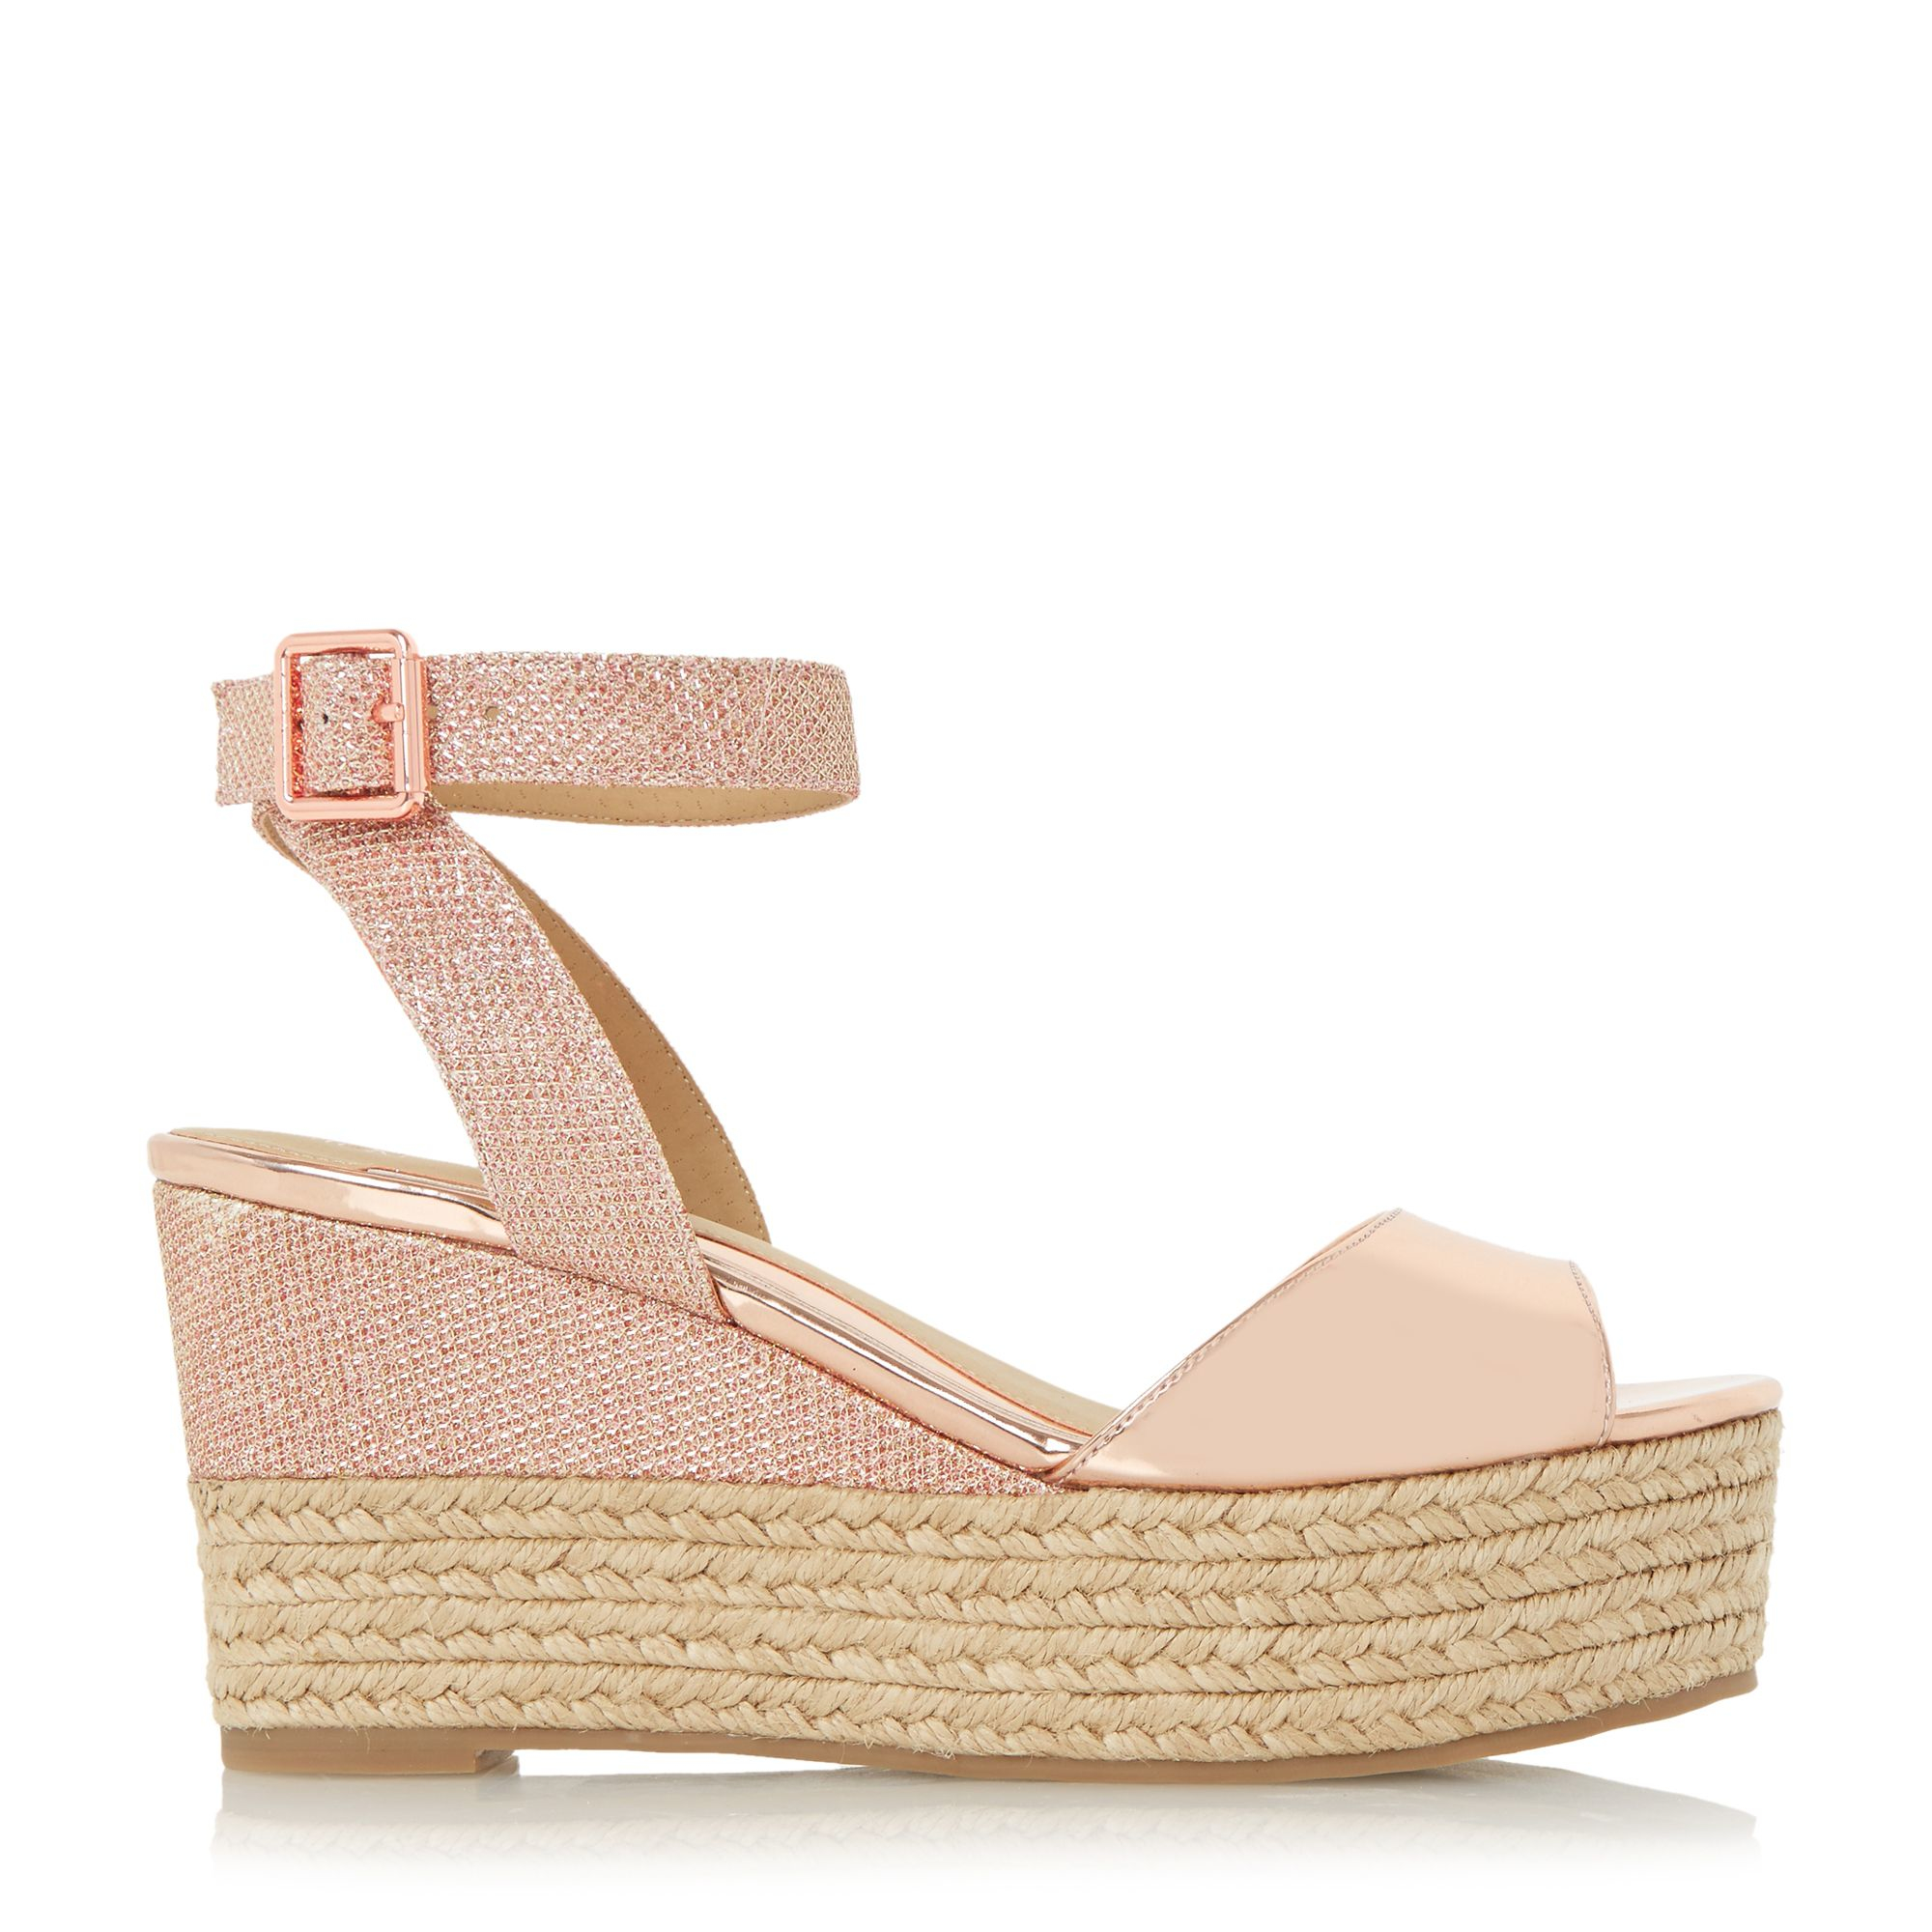 ce863311e10 Dune Kalmia Two Part Espadrille Wedge Sandals in Natural - Lyst